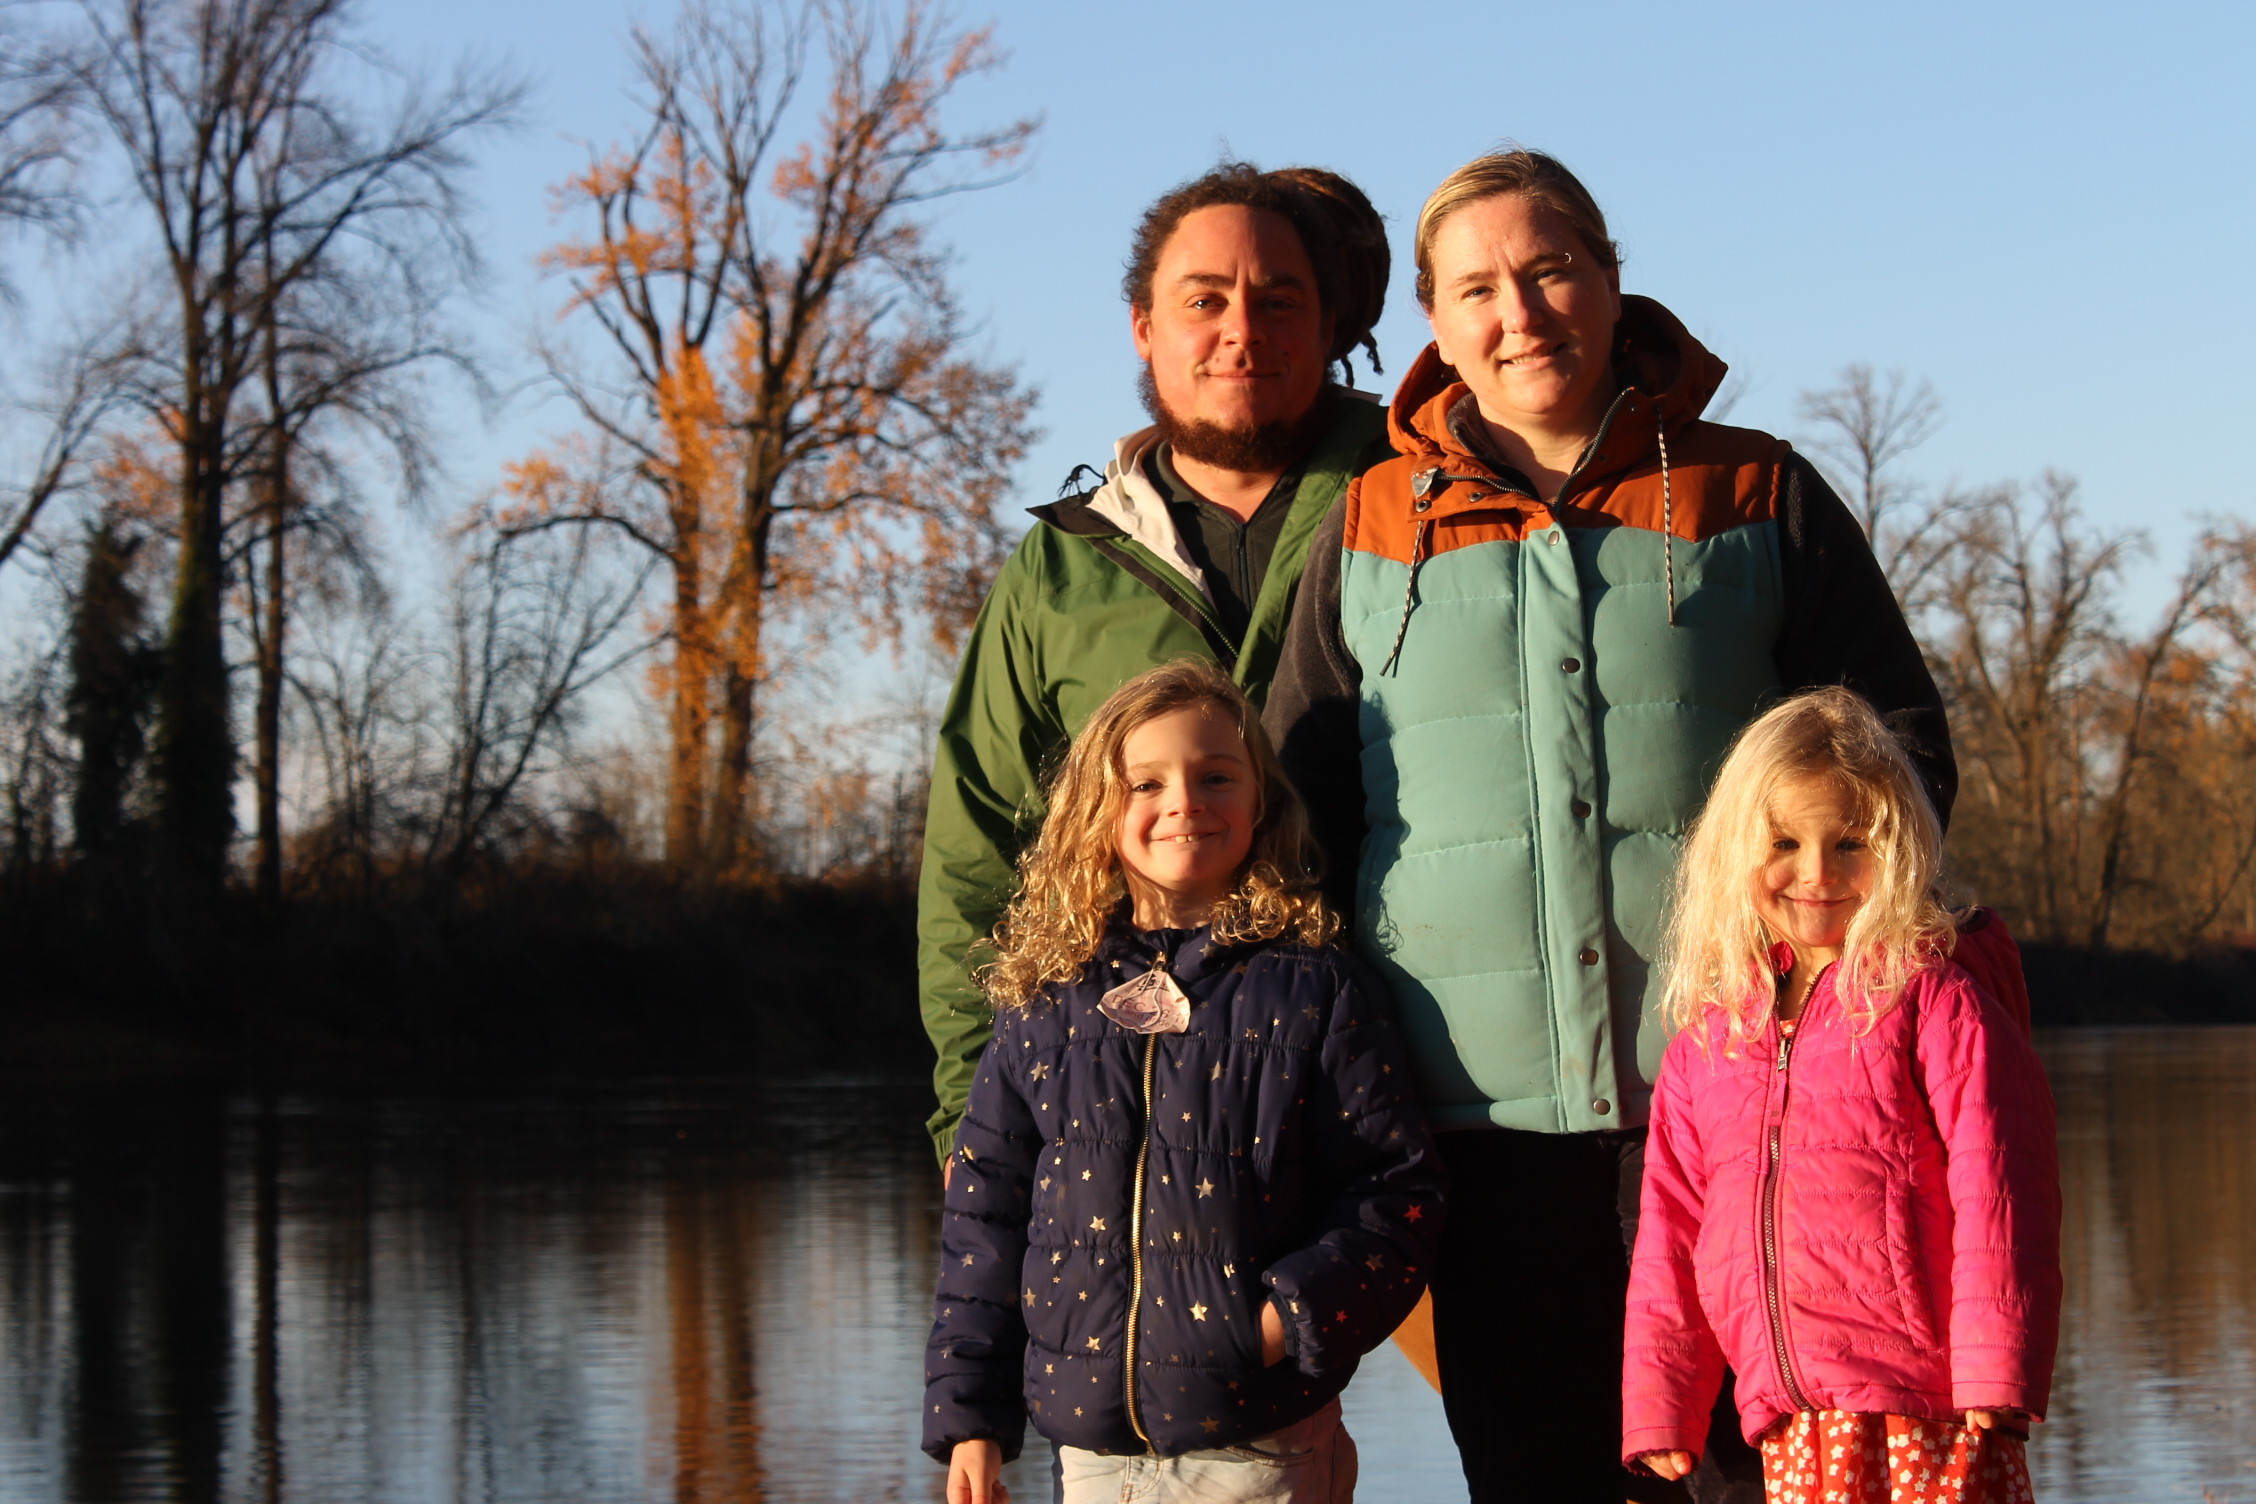 The Mellenthin family (Matt, Serene, and 2 daughters) at home along the river's edge.